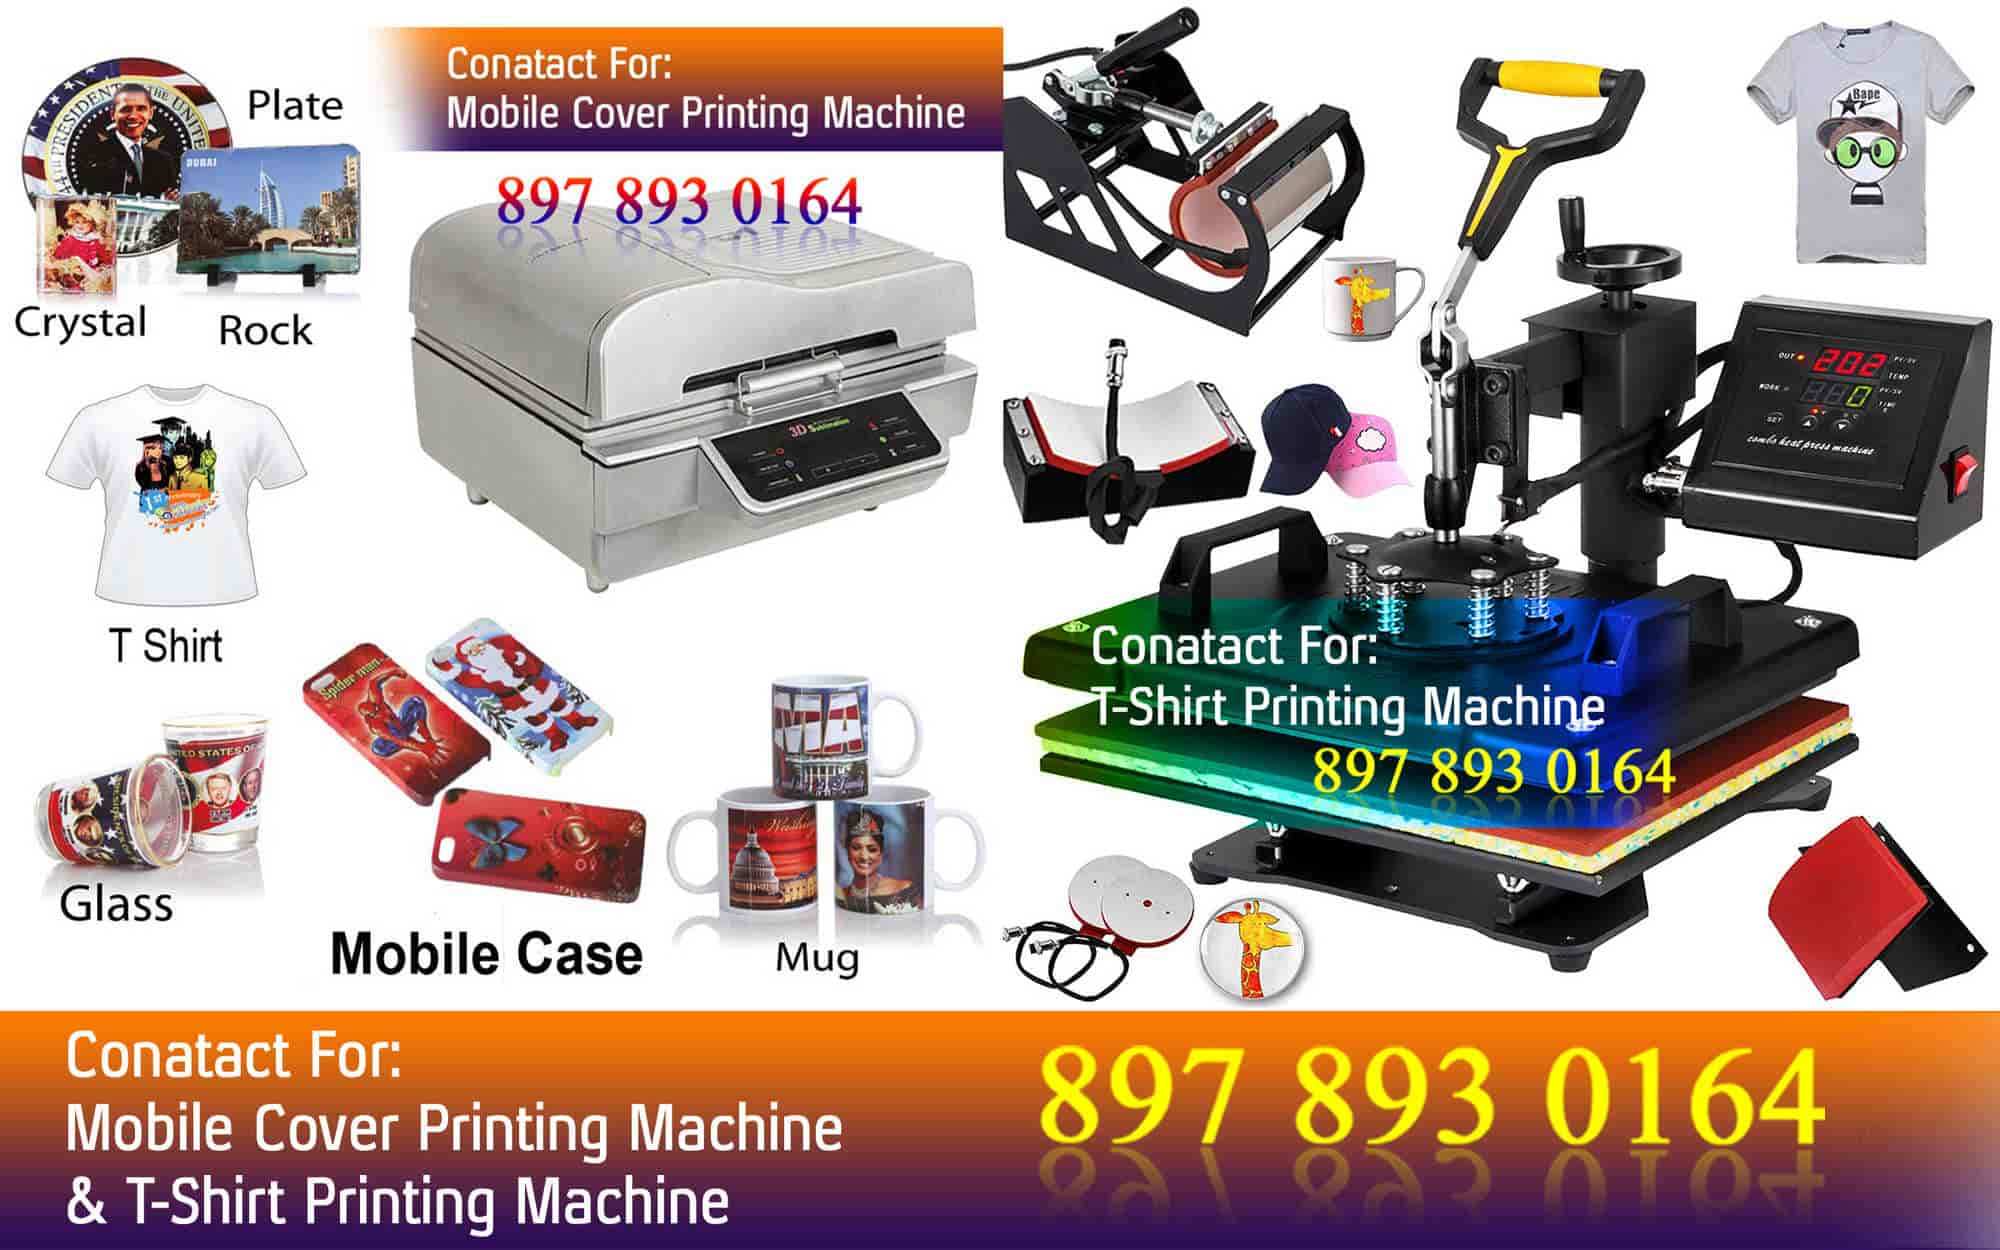 9dd94186e Daylight Print Pack, Ameerpet - Sublimation Ink Importers in Hyderabad -  Justdial